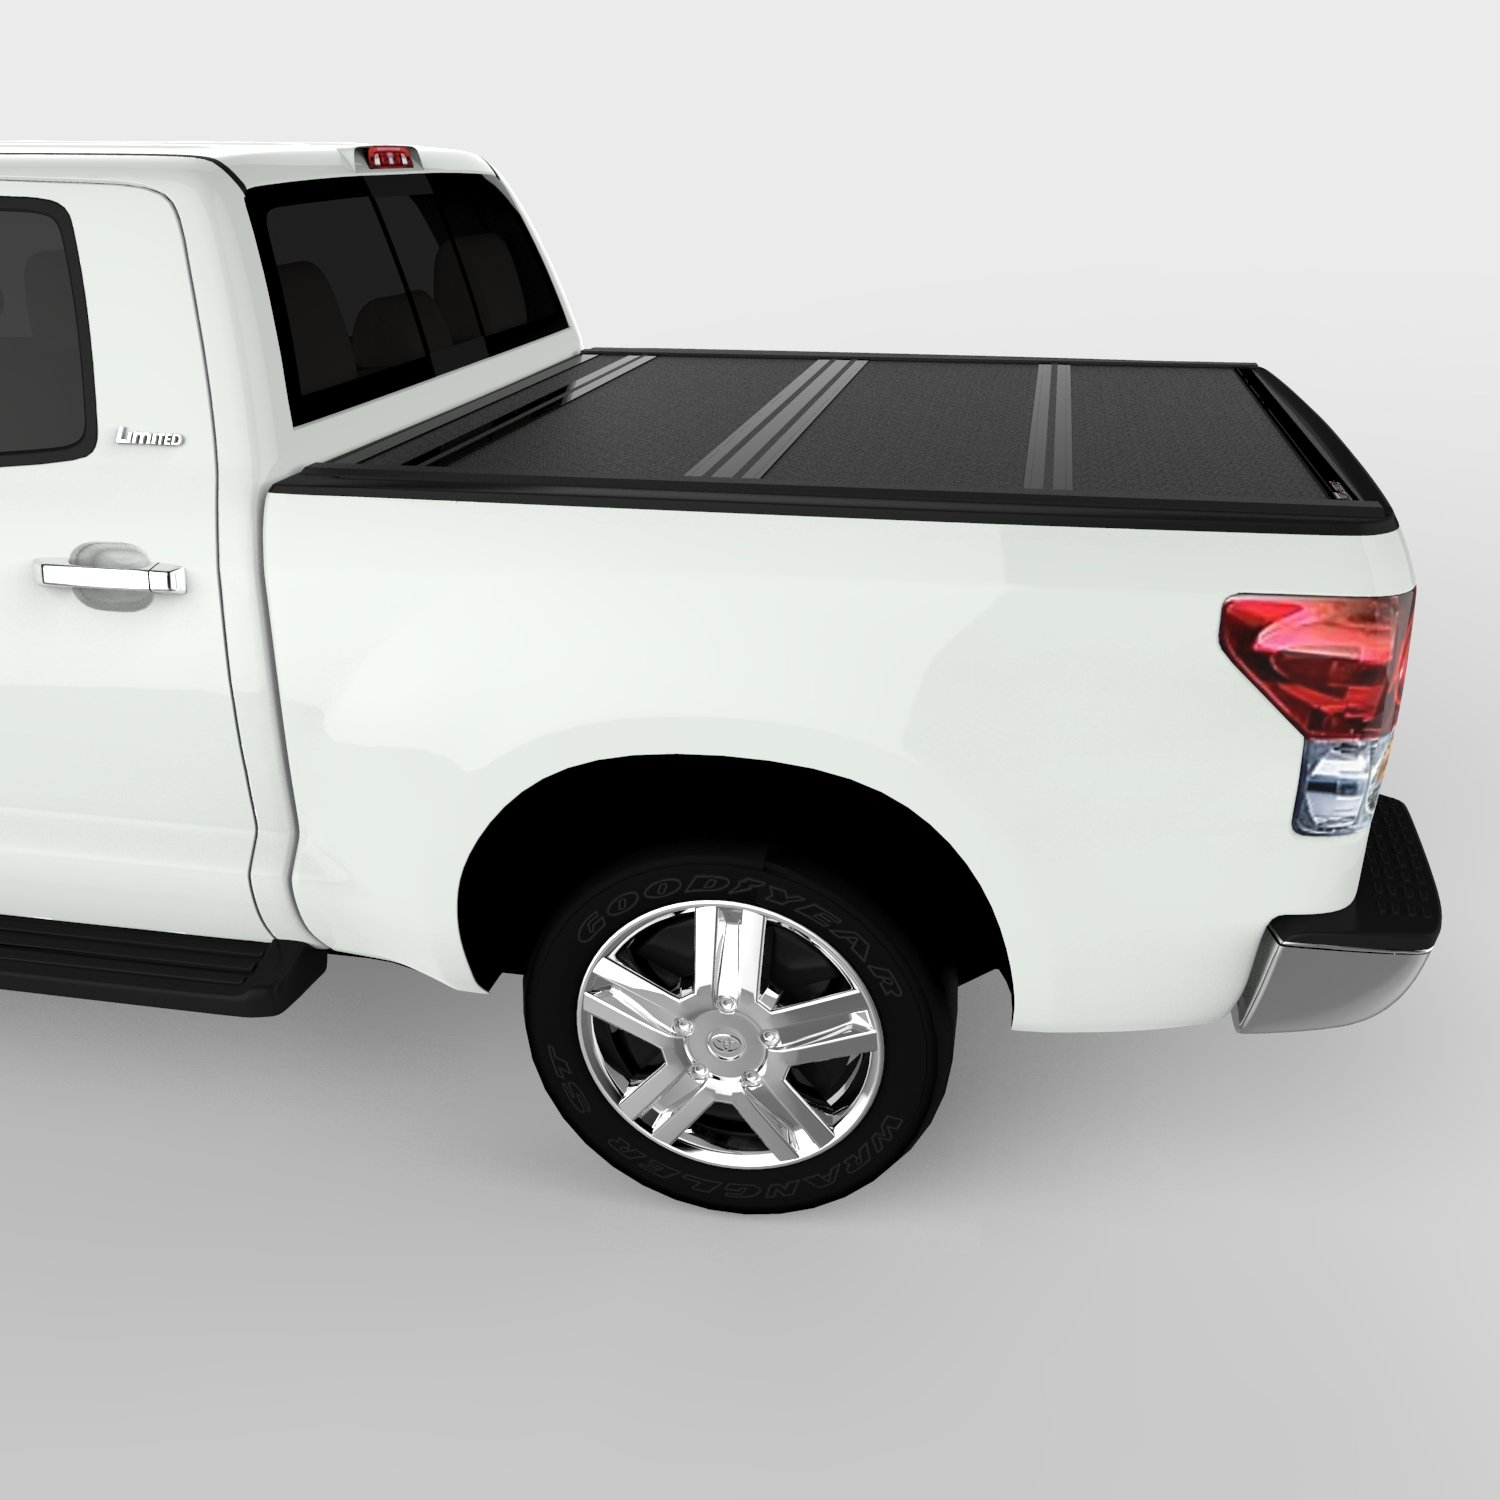 cover tonneau town in palm coast fl bed undercover tonneaus best covers truck